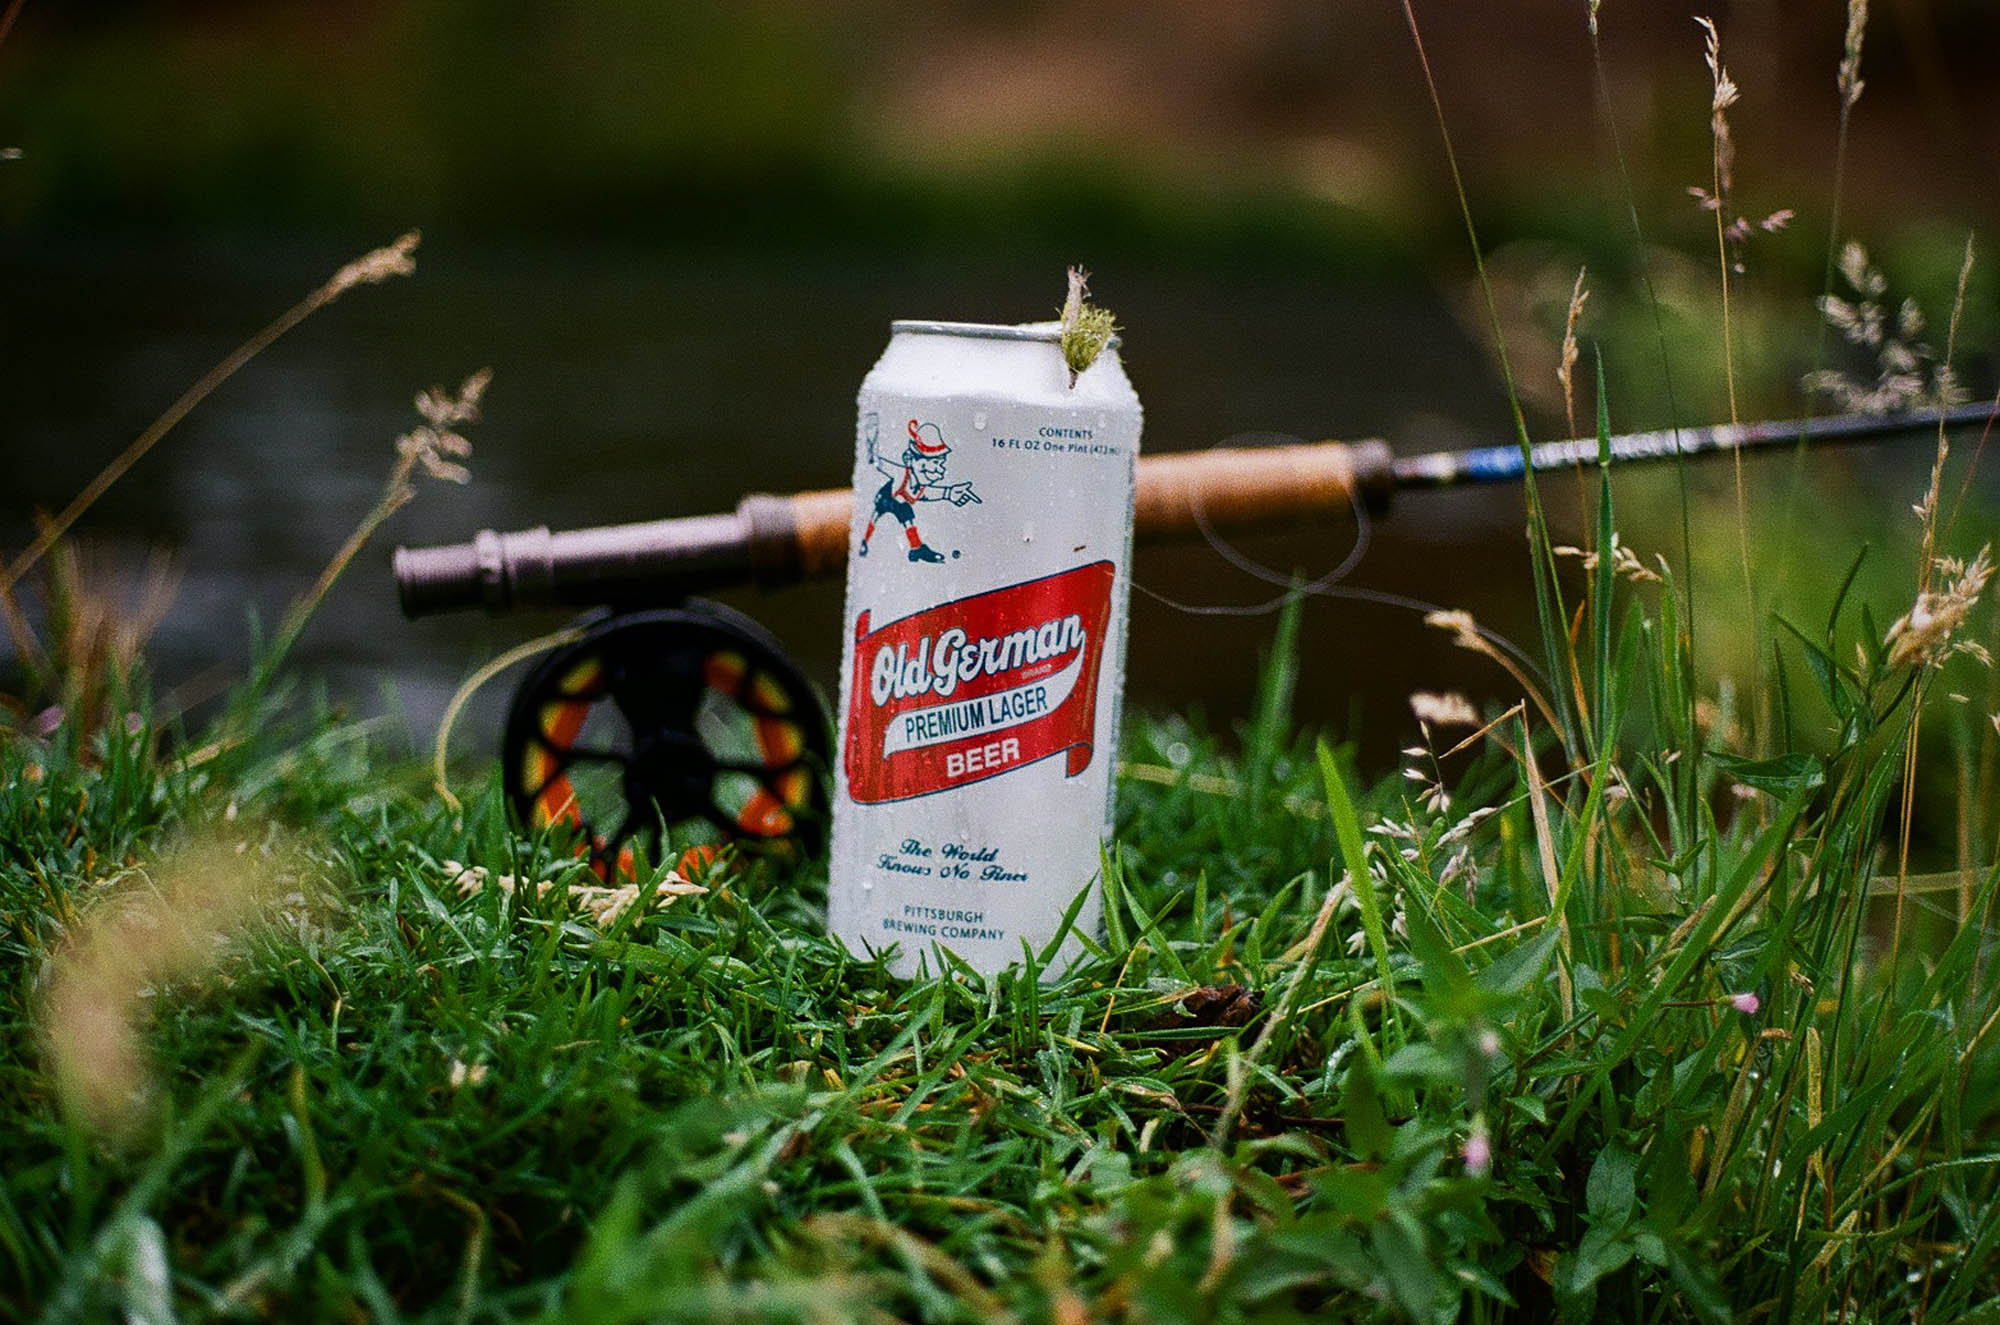 Lomography 400 ~ Canon AE-1 ~ Canon 50mm F1.8 Beer and a fly rod, my kind of day out